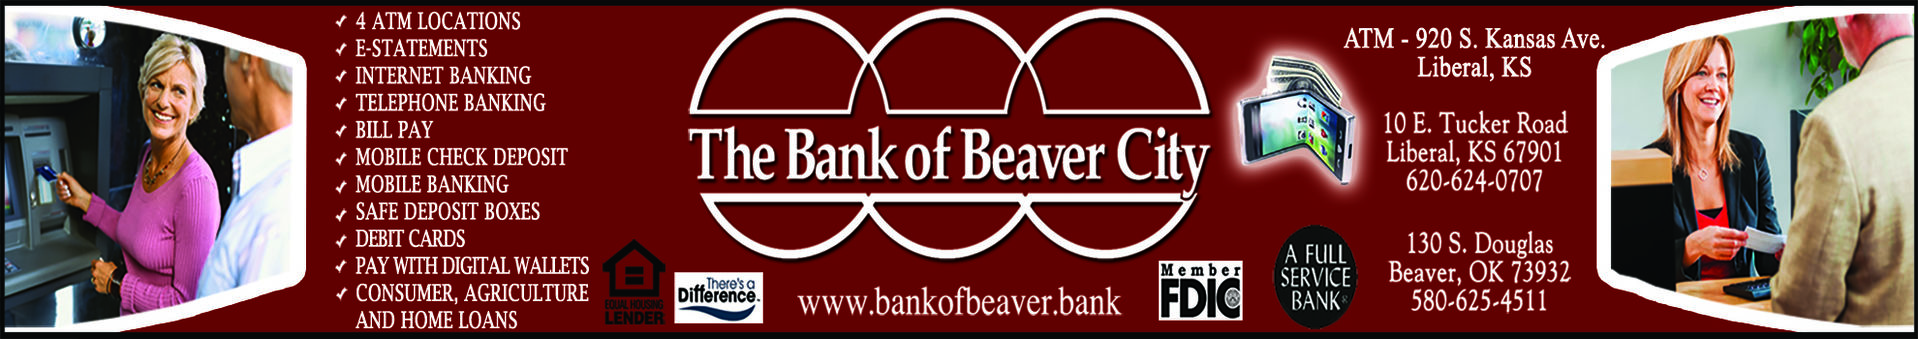 Bank of Beaver City banner